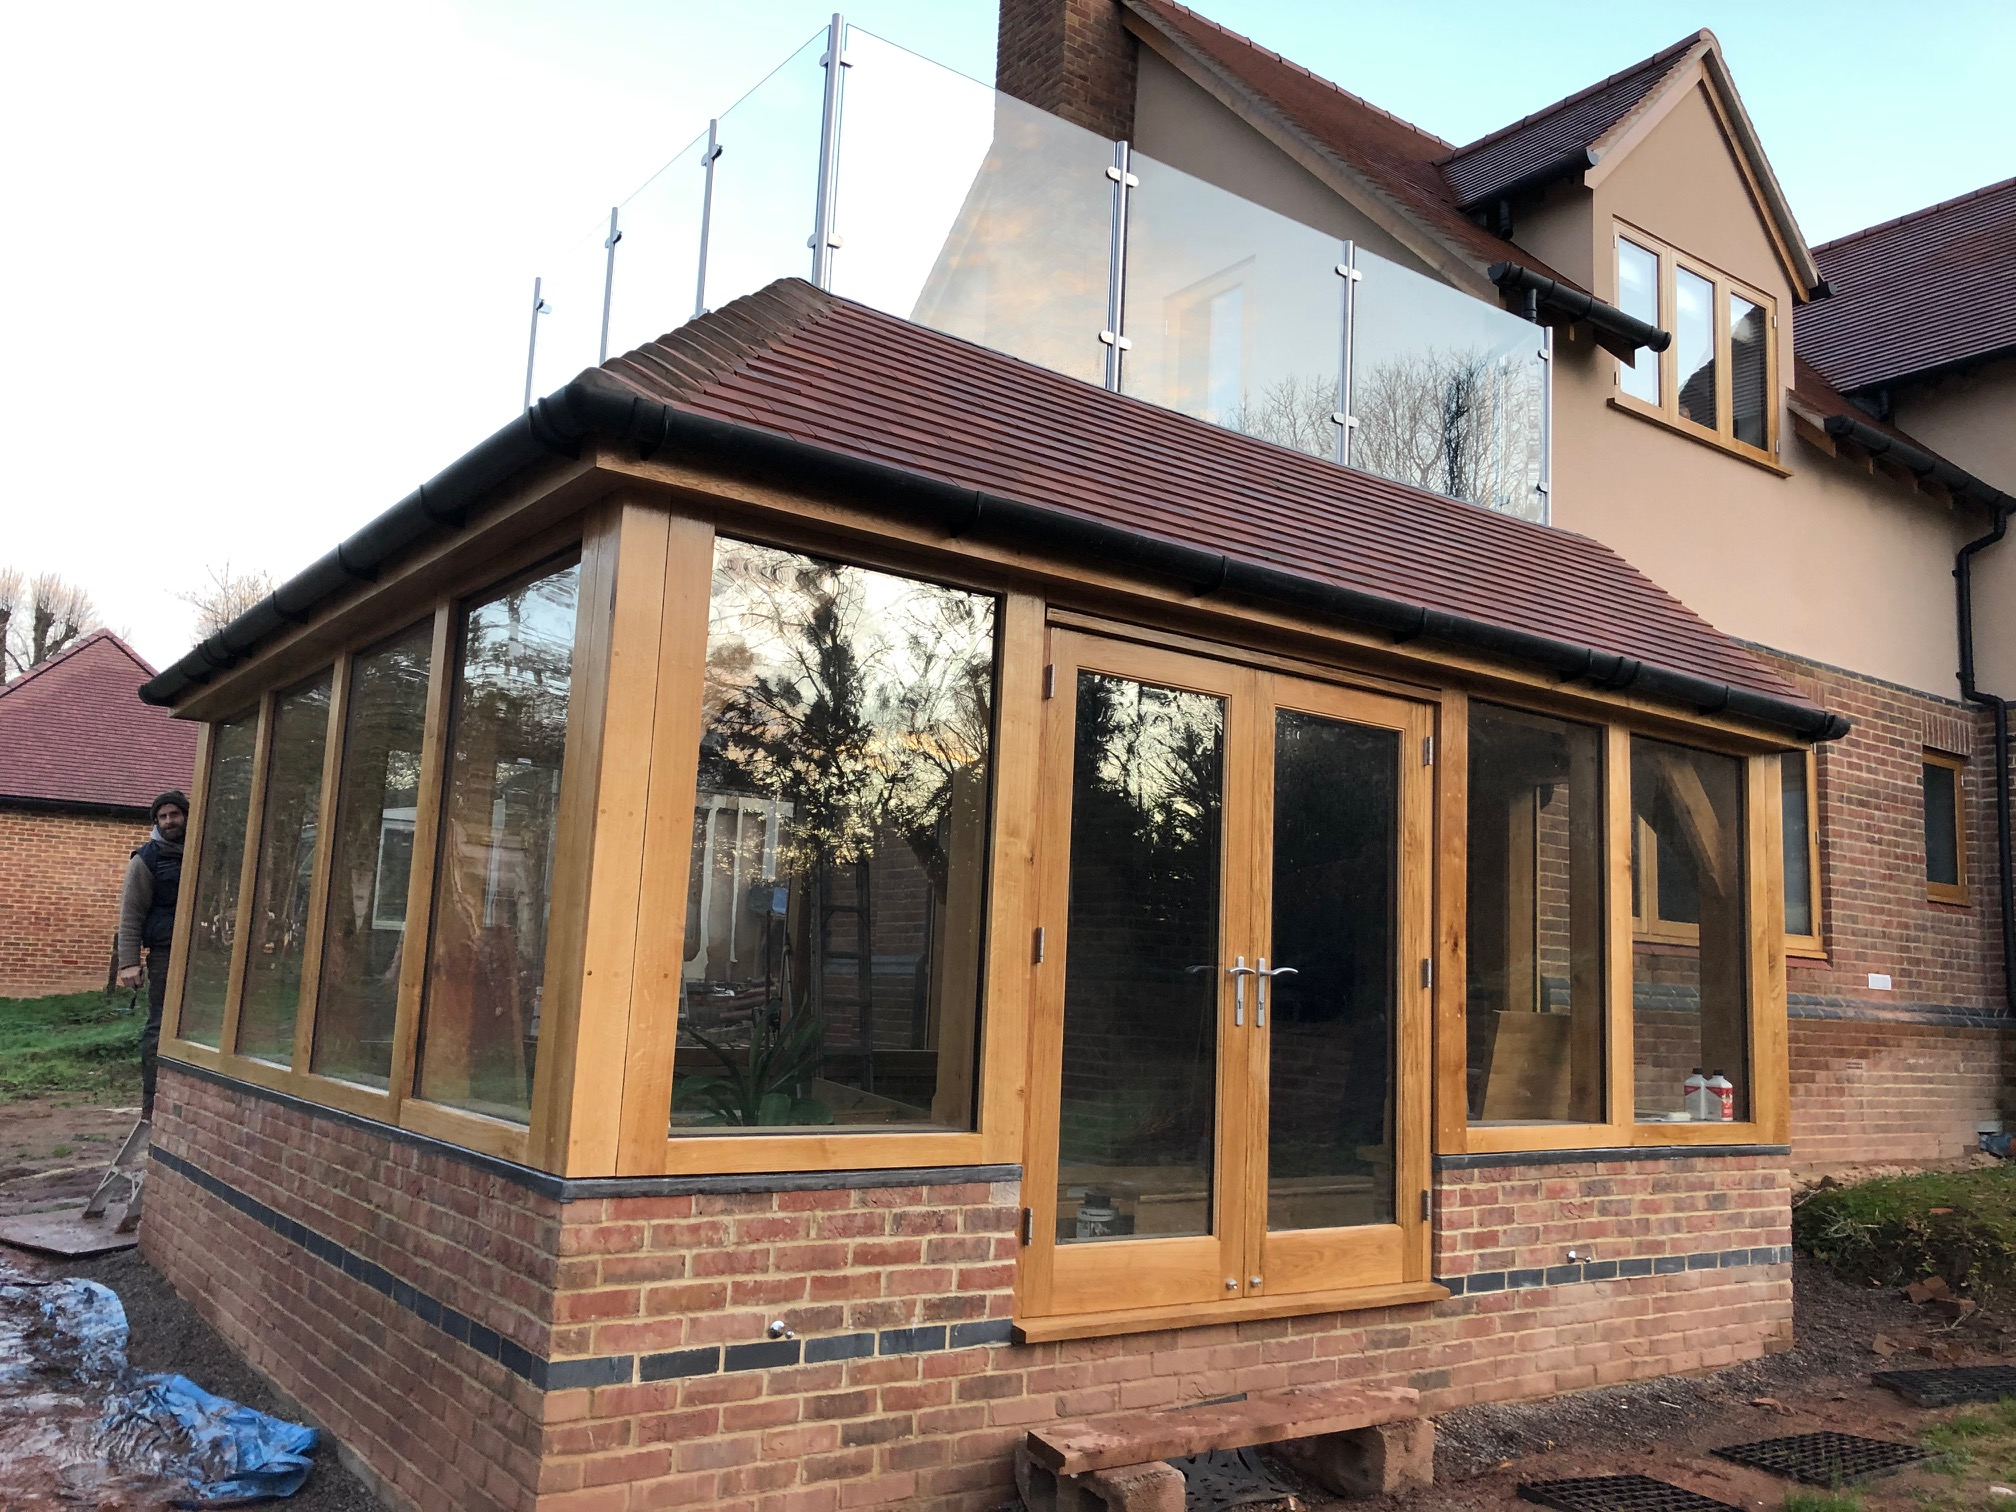 An oak framed garden room with balcony above